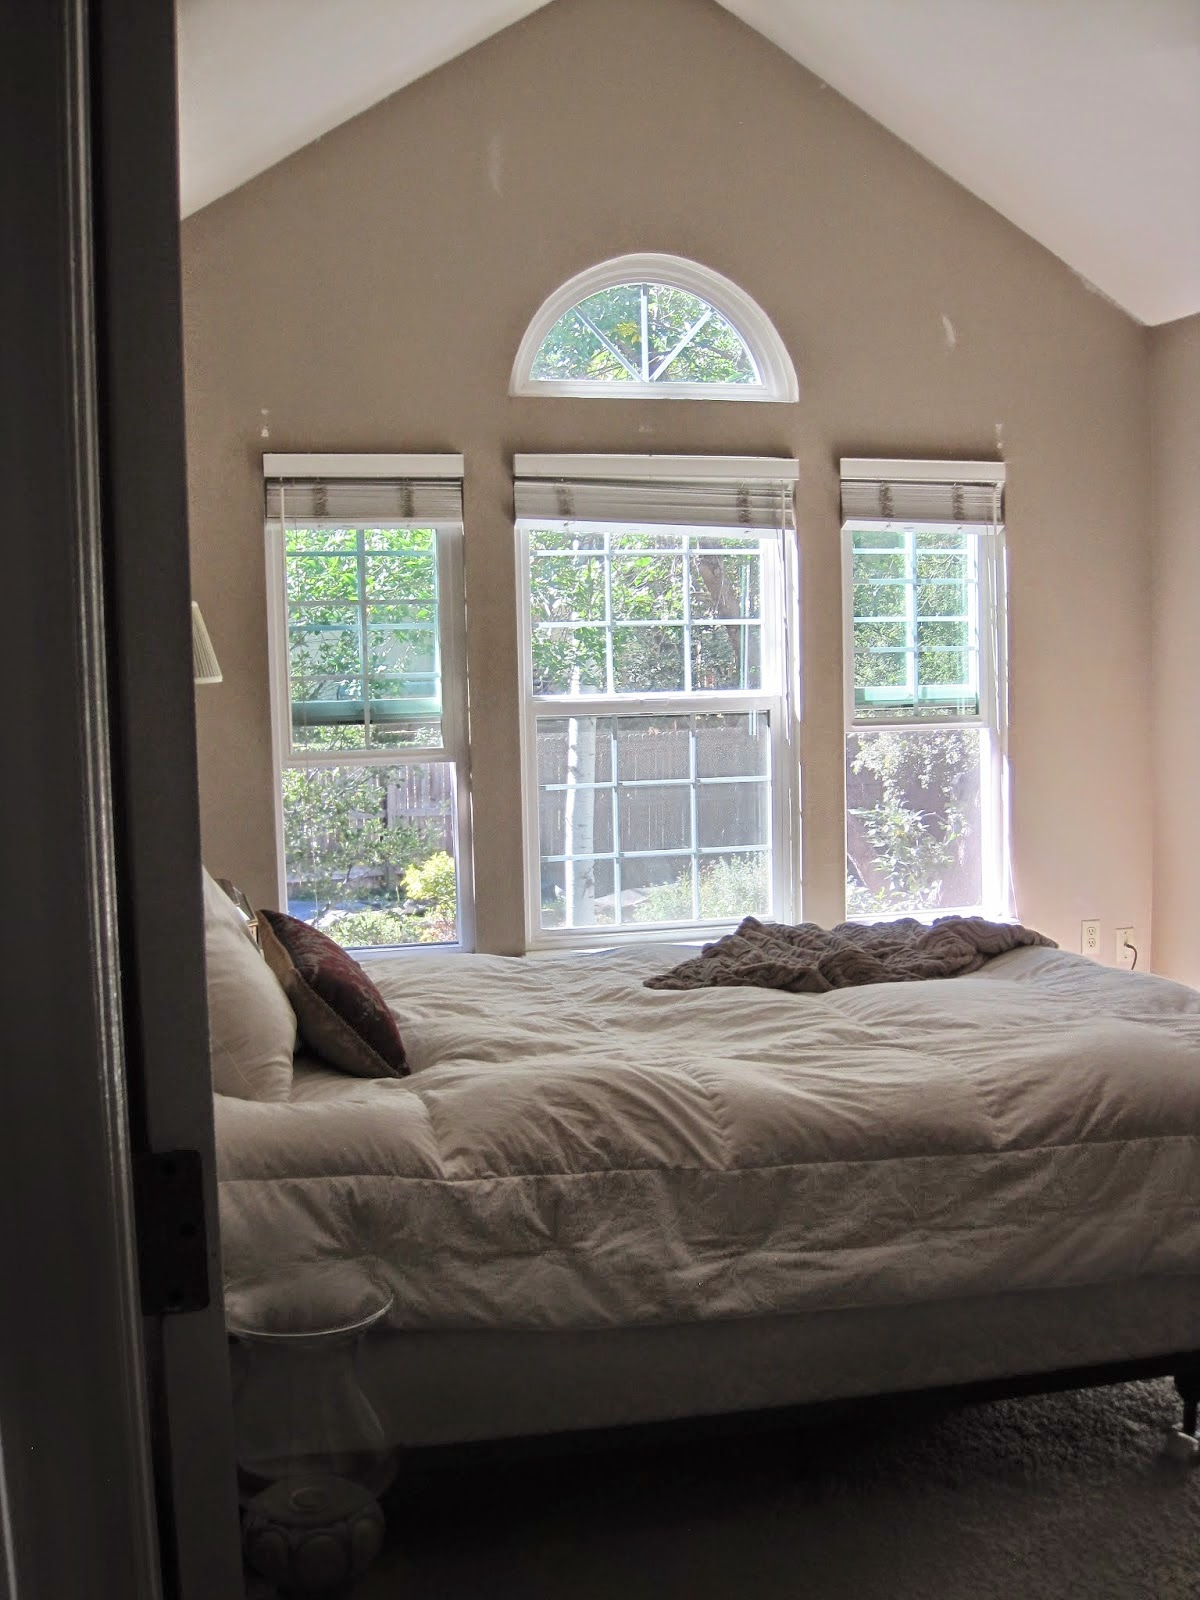 first up was rearranging the furniture placing the bed under the